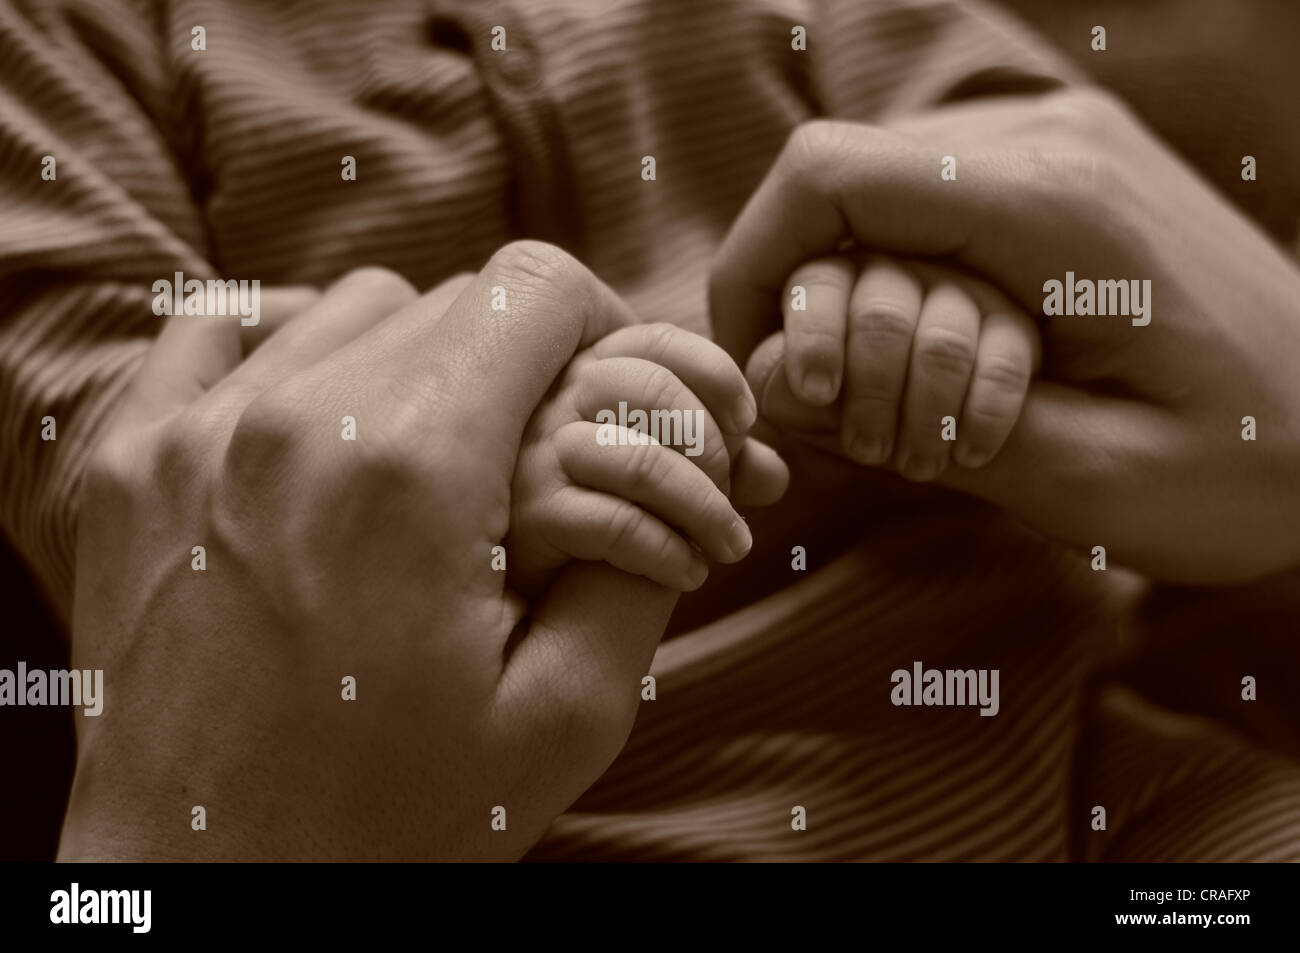 Parental hands holding the hands of a baby - Stock Image